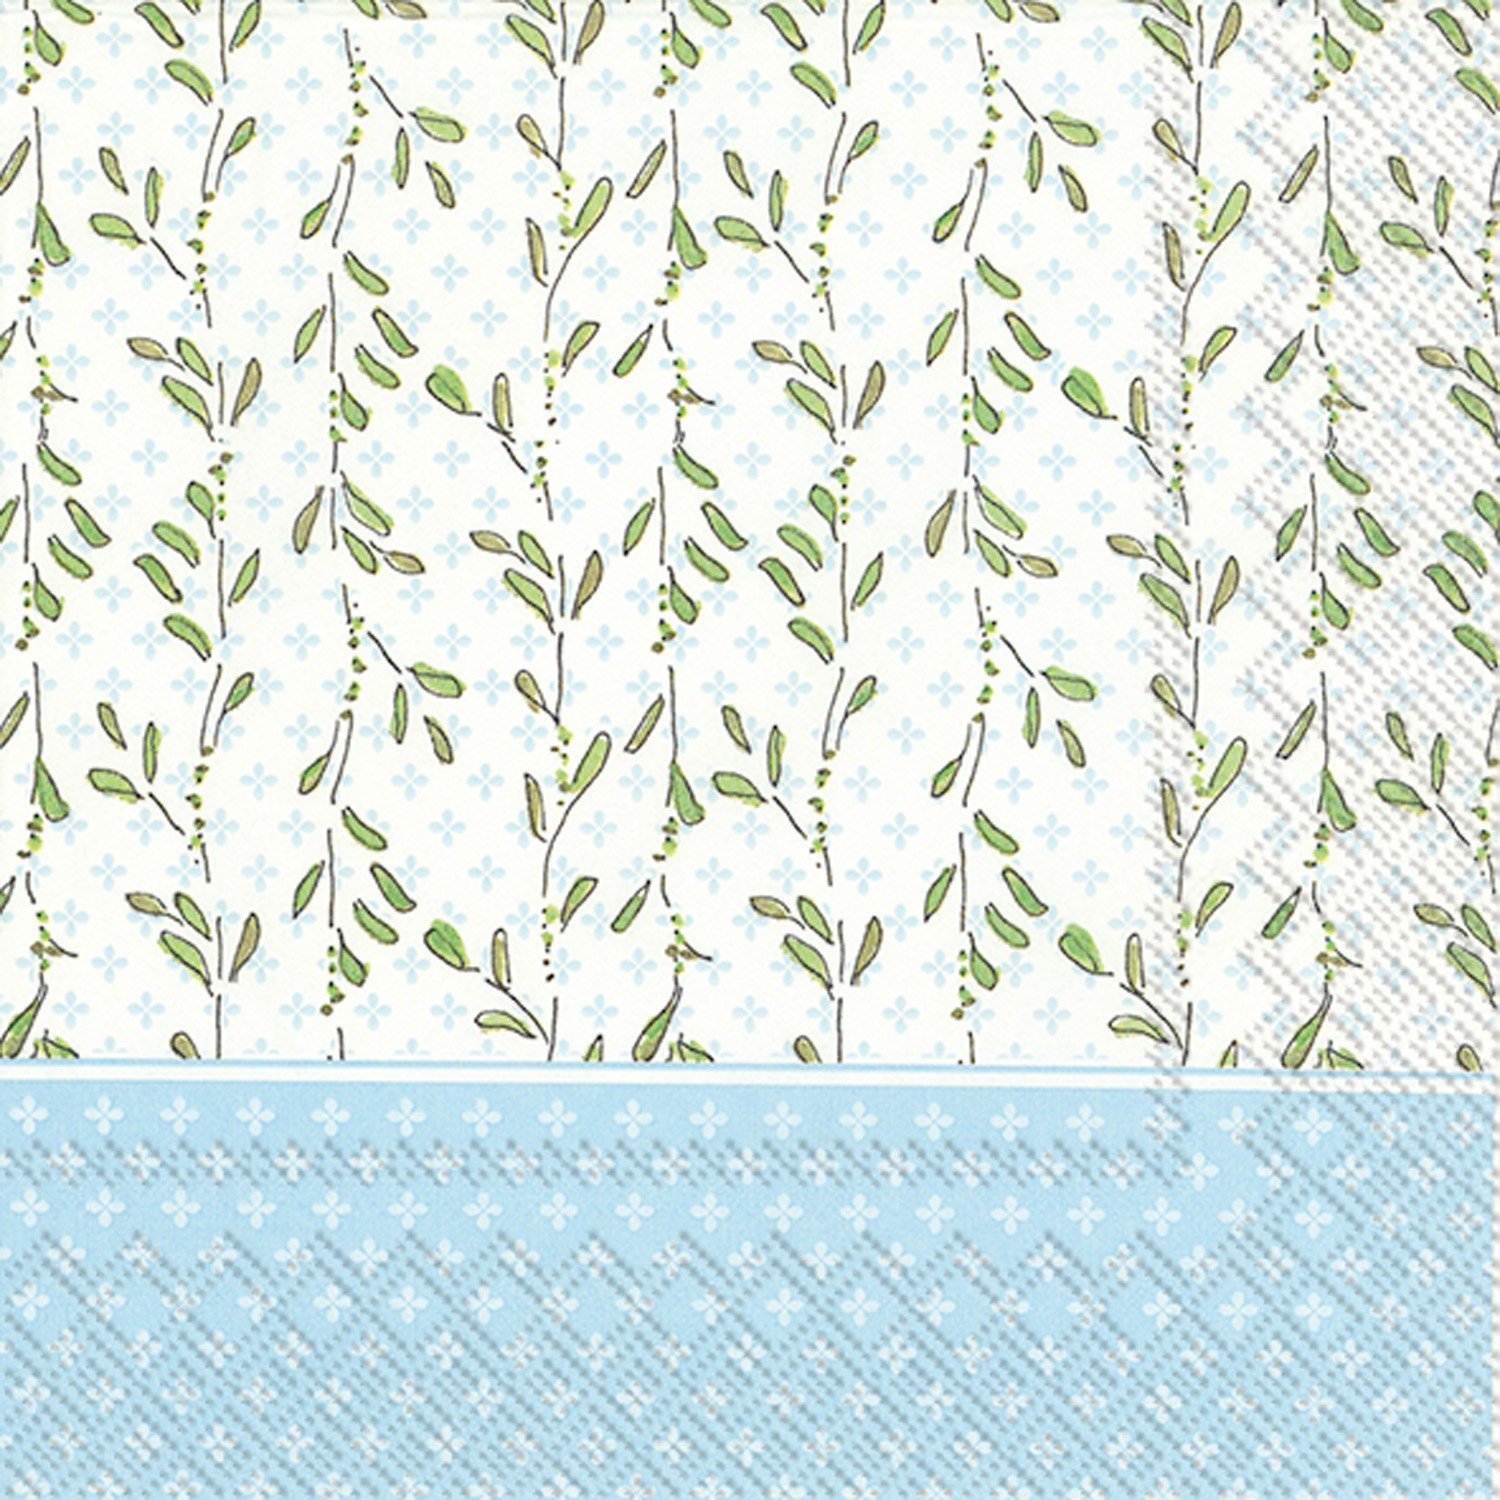 Ideal Home Range L707649 Rosanne Beck 20 Count Paper Luncheon Napkins, Blue Baby Carriage